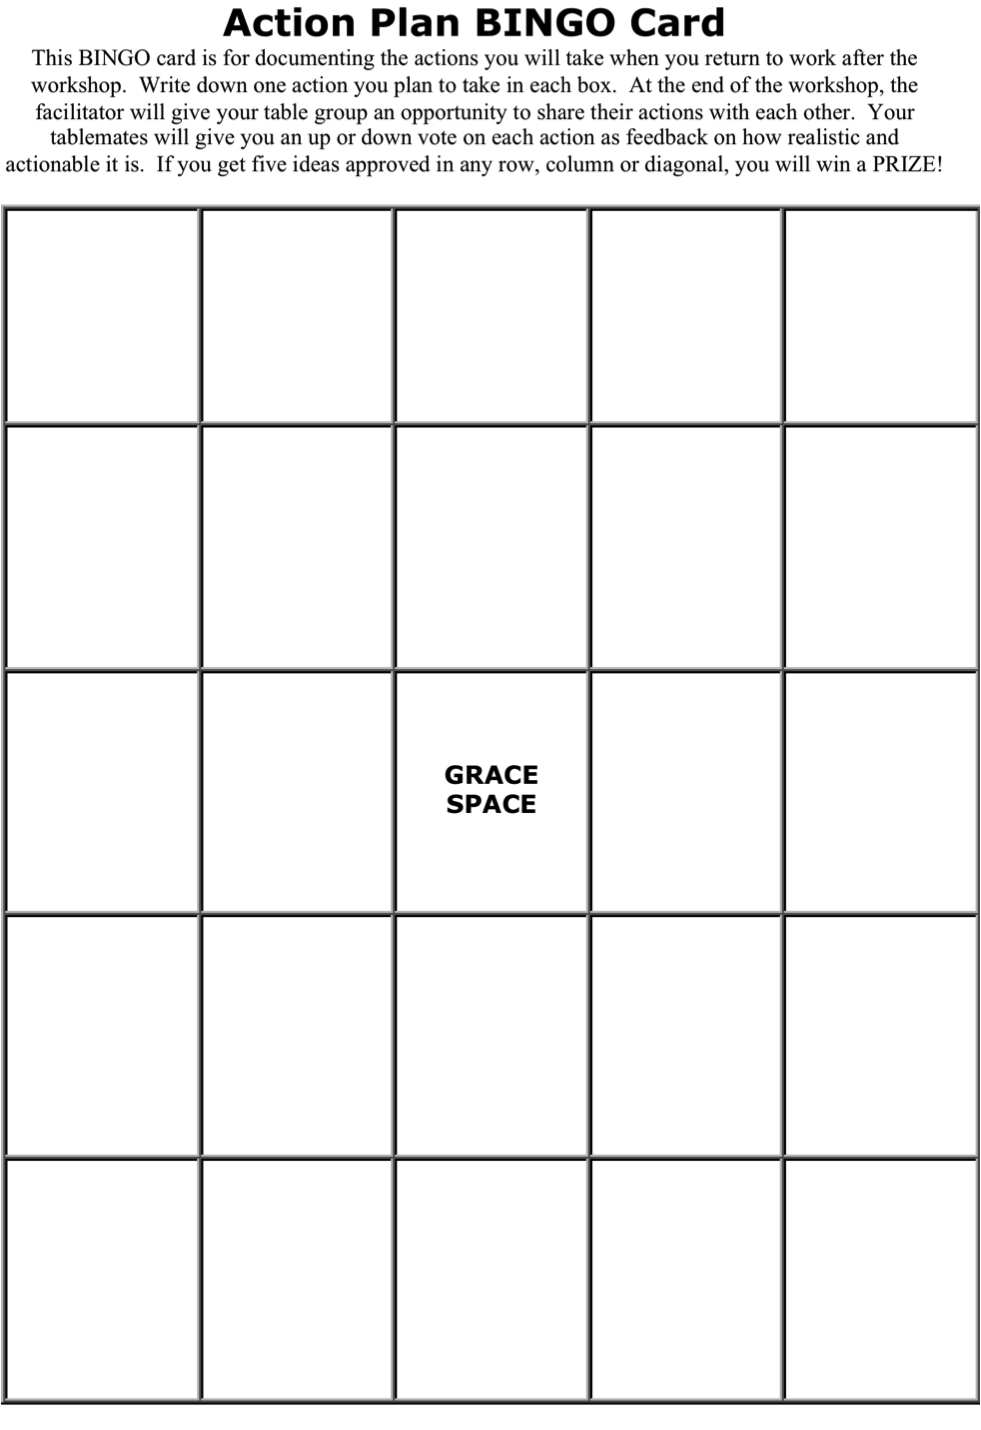 worksheet Bingo Worksheet action plan teach them bingo card